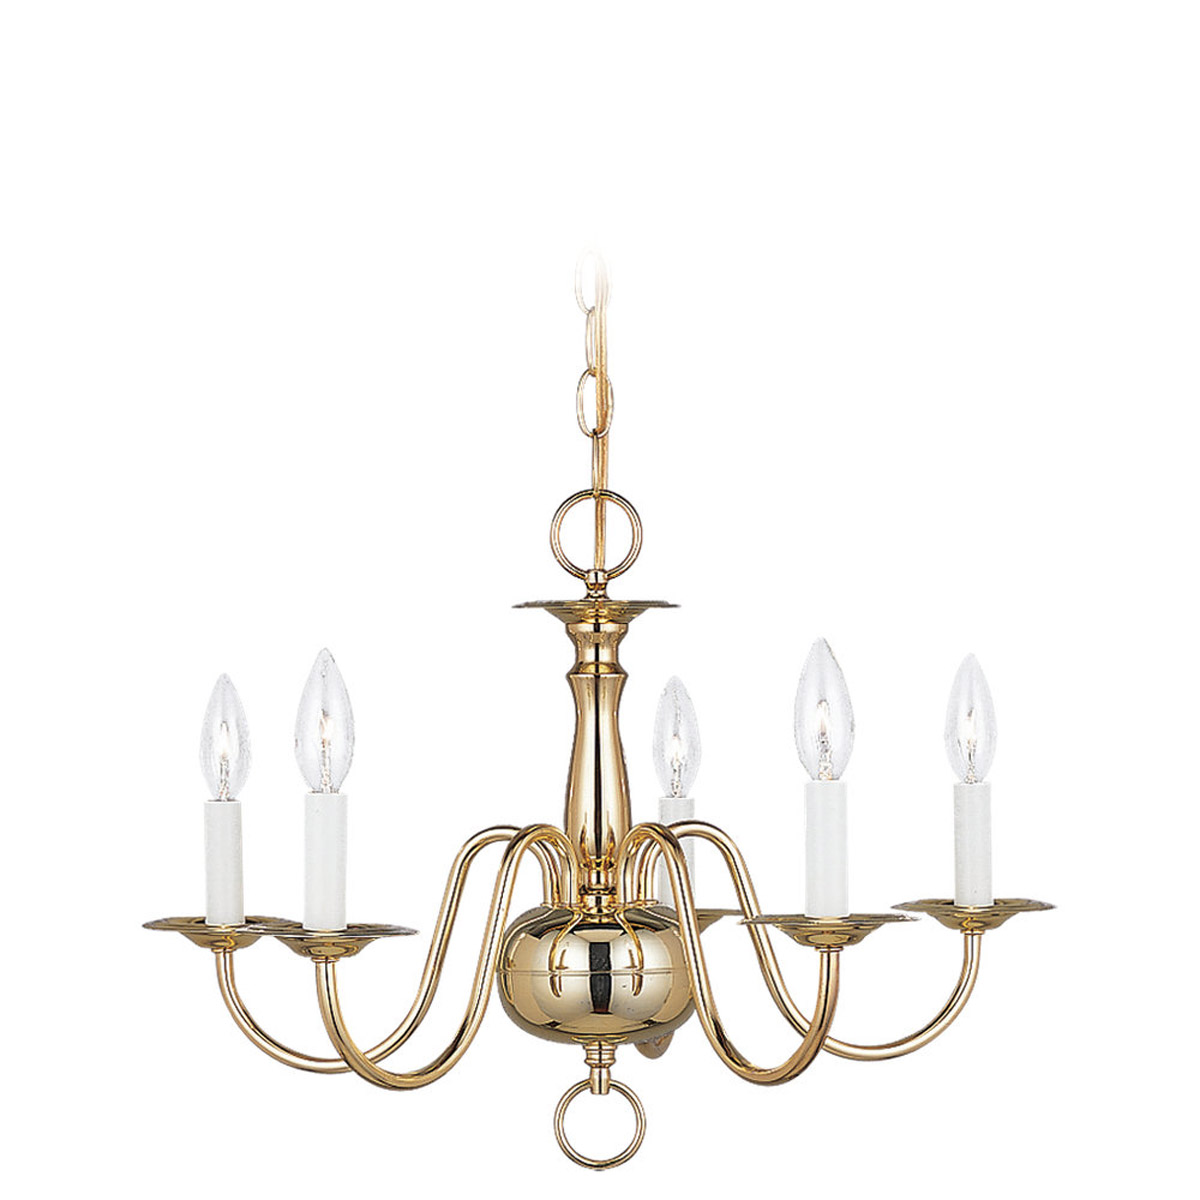 Sea Gull 3313-02 Traditional 5 Light 20 inch Polished Brass Chandelier Ceiling Light photo